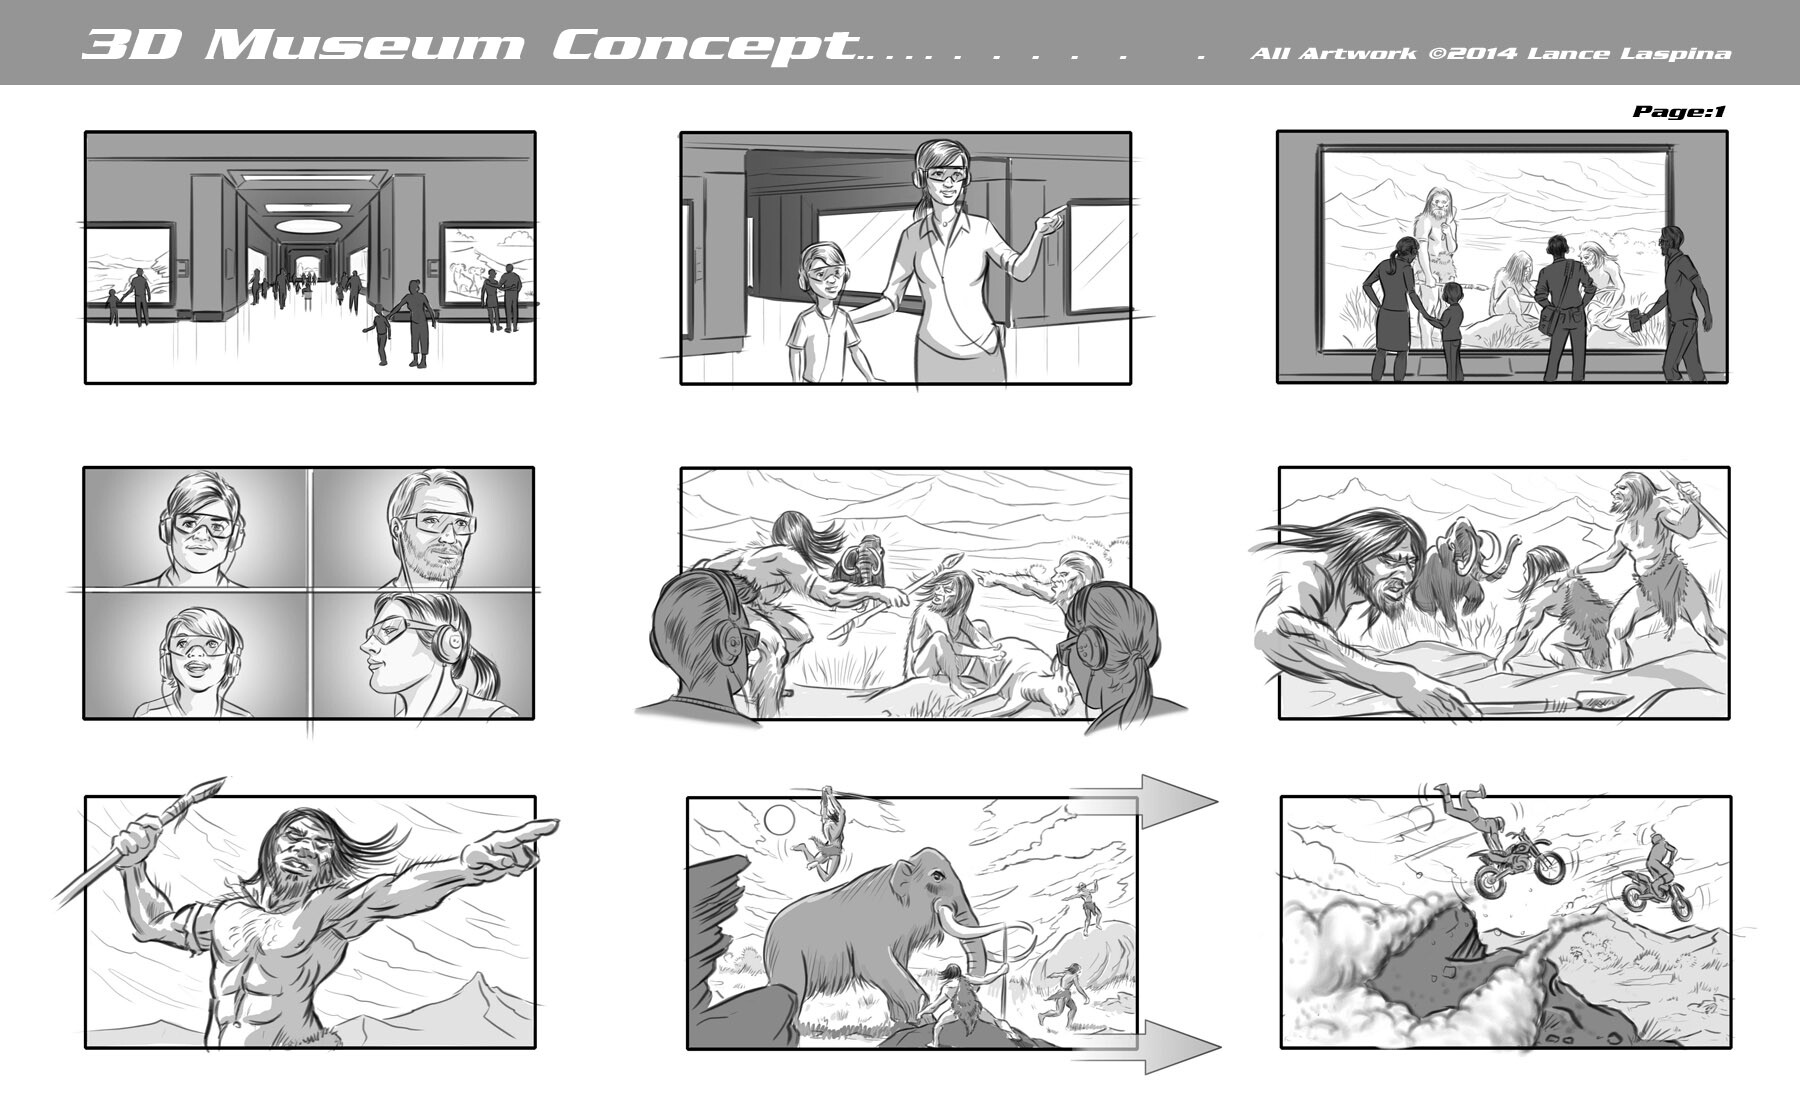 Lance laspina as storyboardsamples 11